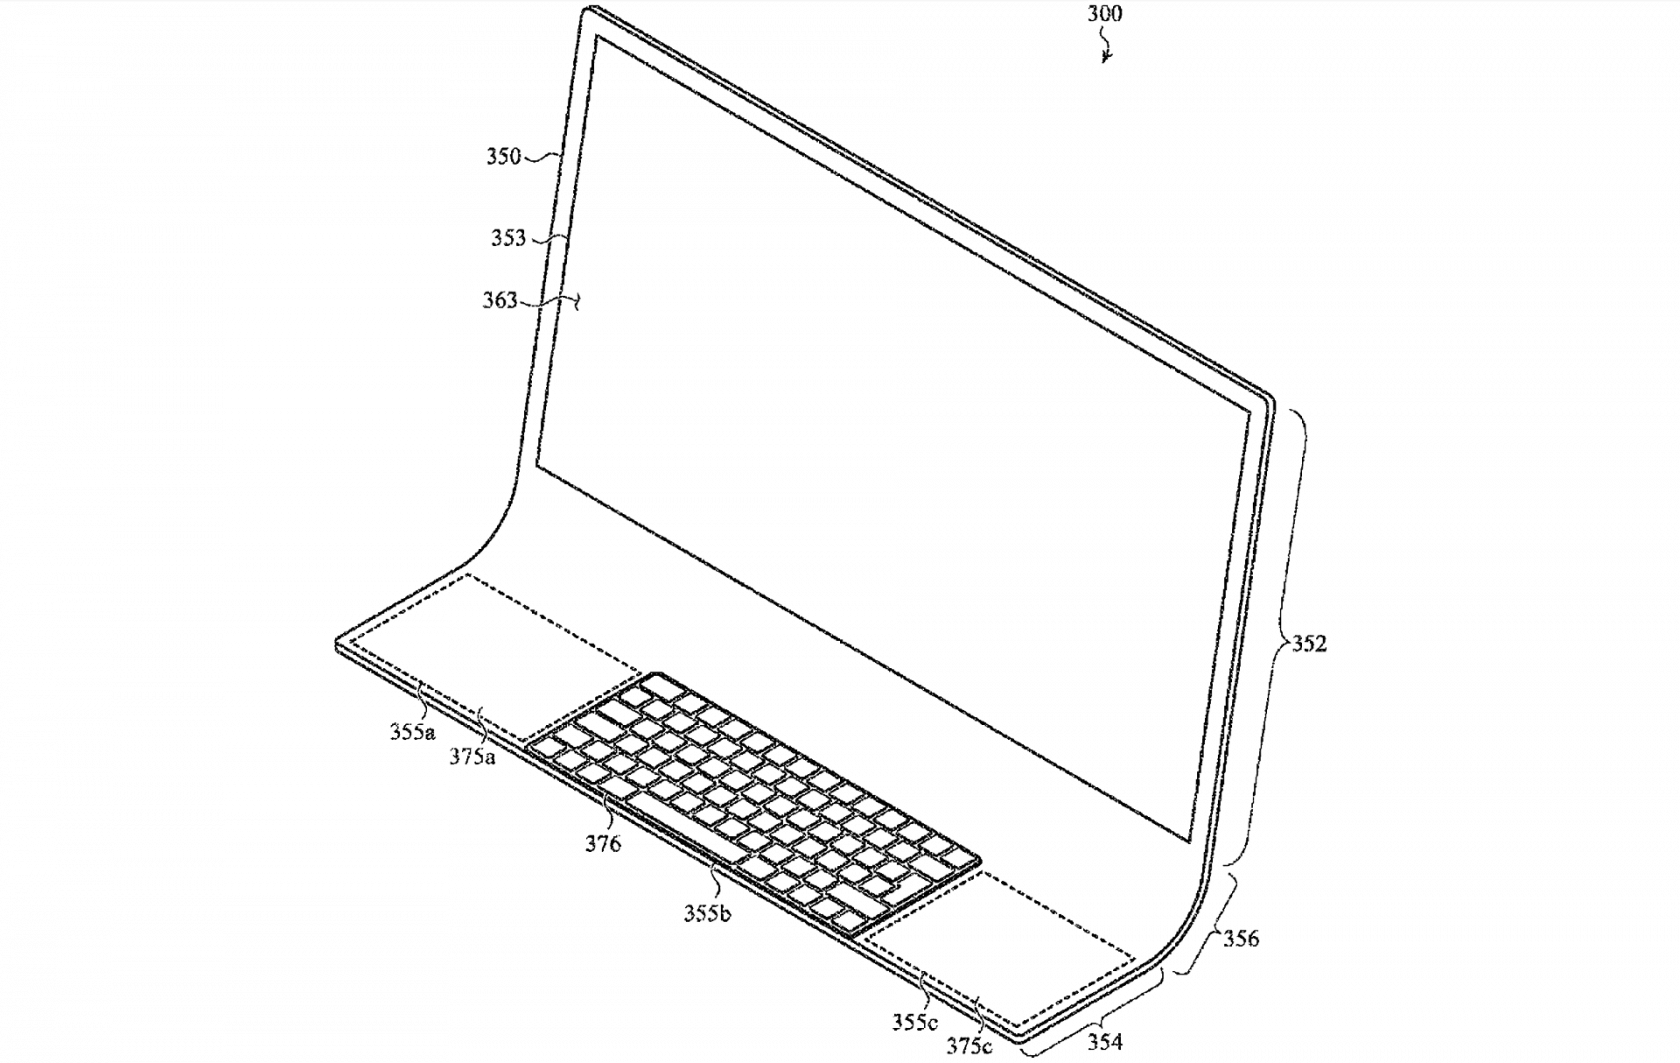 Apple could be planning to build a Mac using a single piece of glass